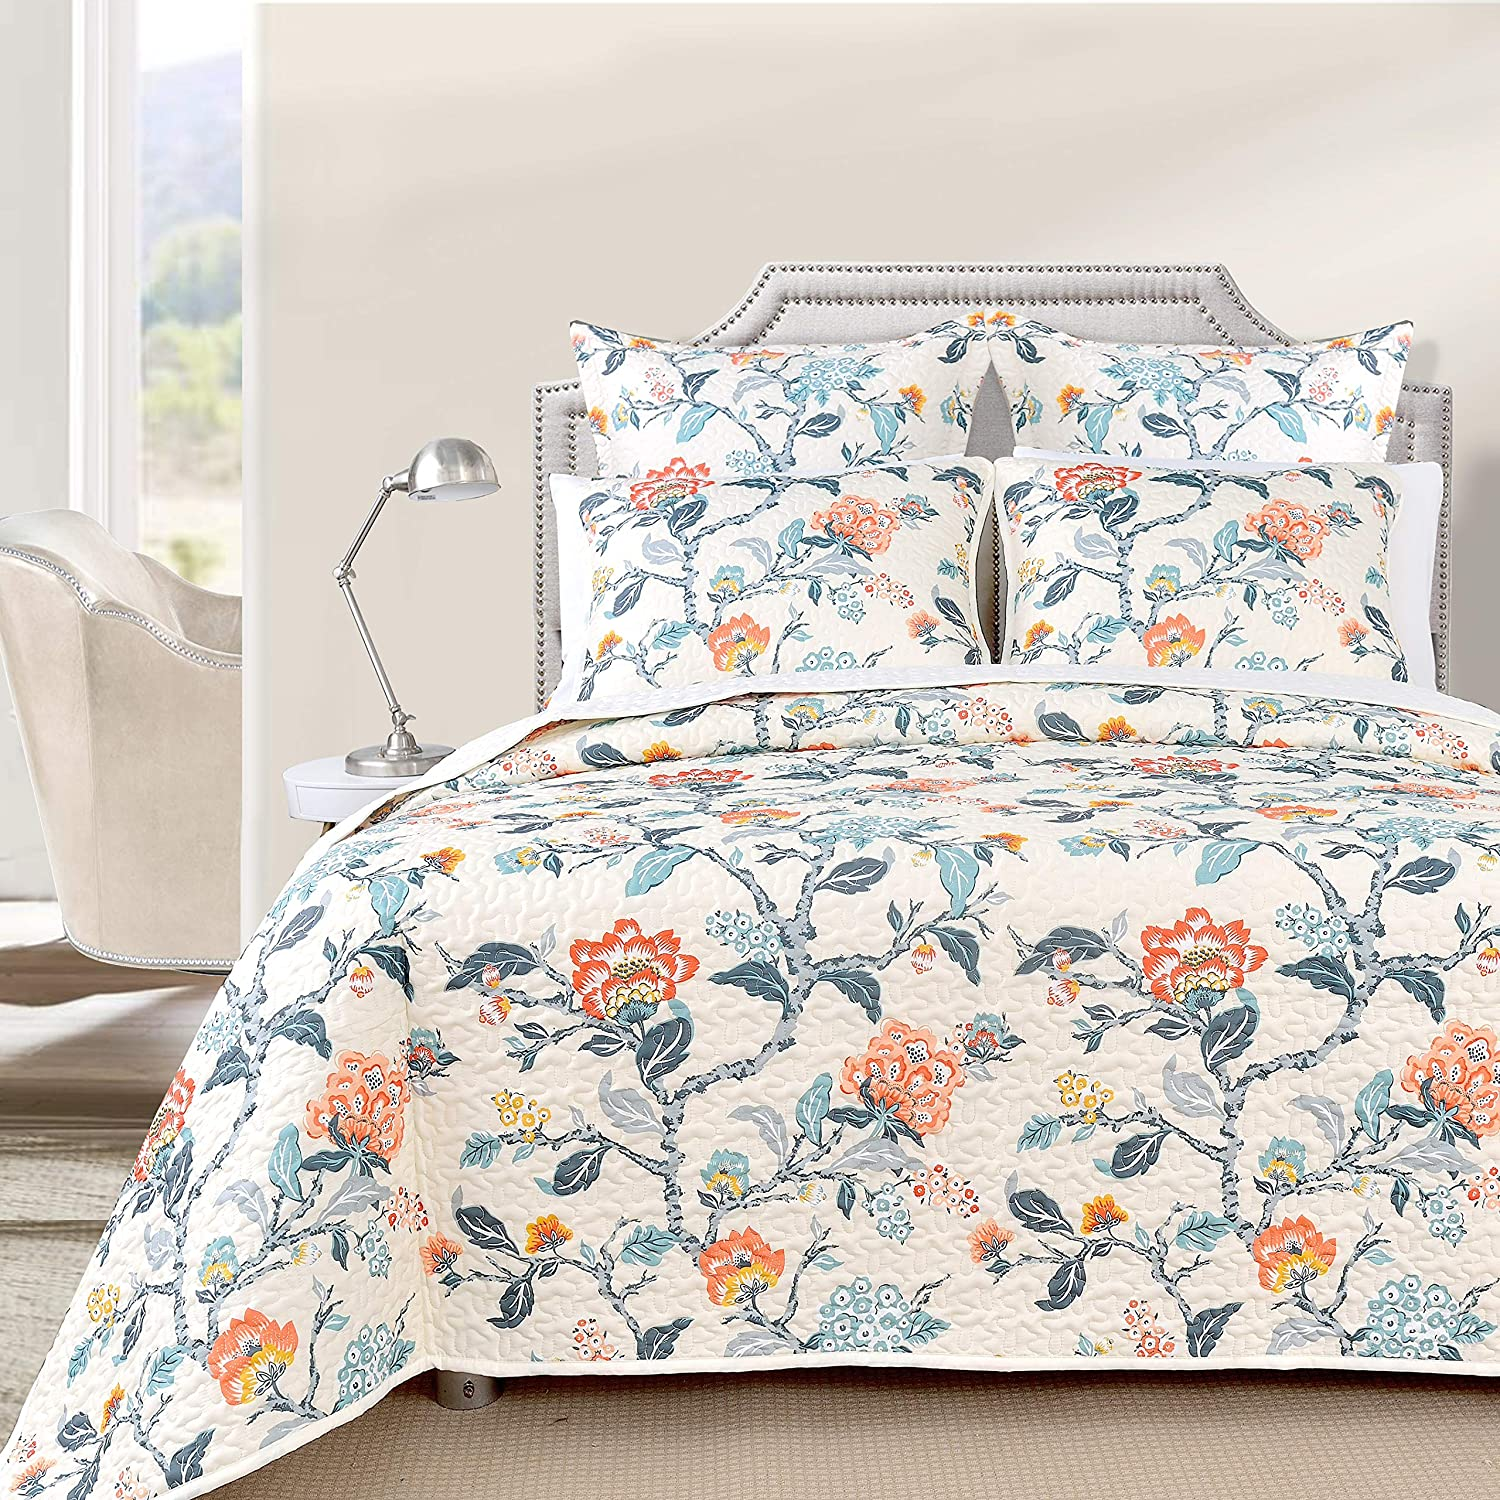 DriftAway 3 Piece Ada Reversible Quilt Set Bedspreads Coverlets Floral Pattern Cover Prewashed Multi King